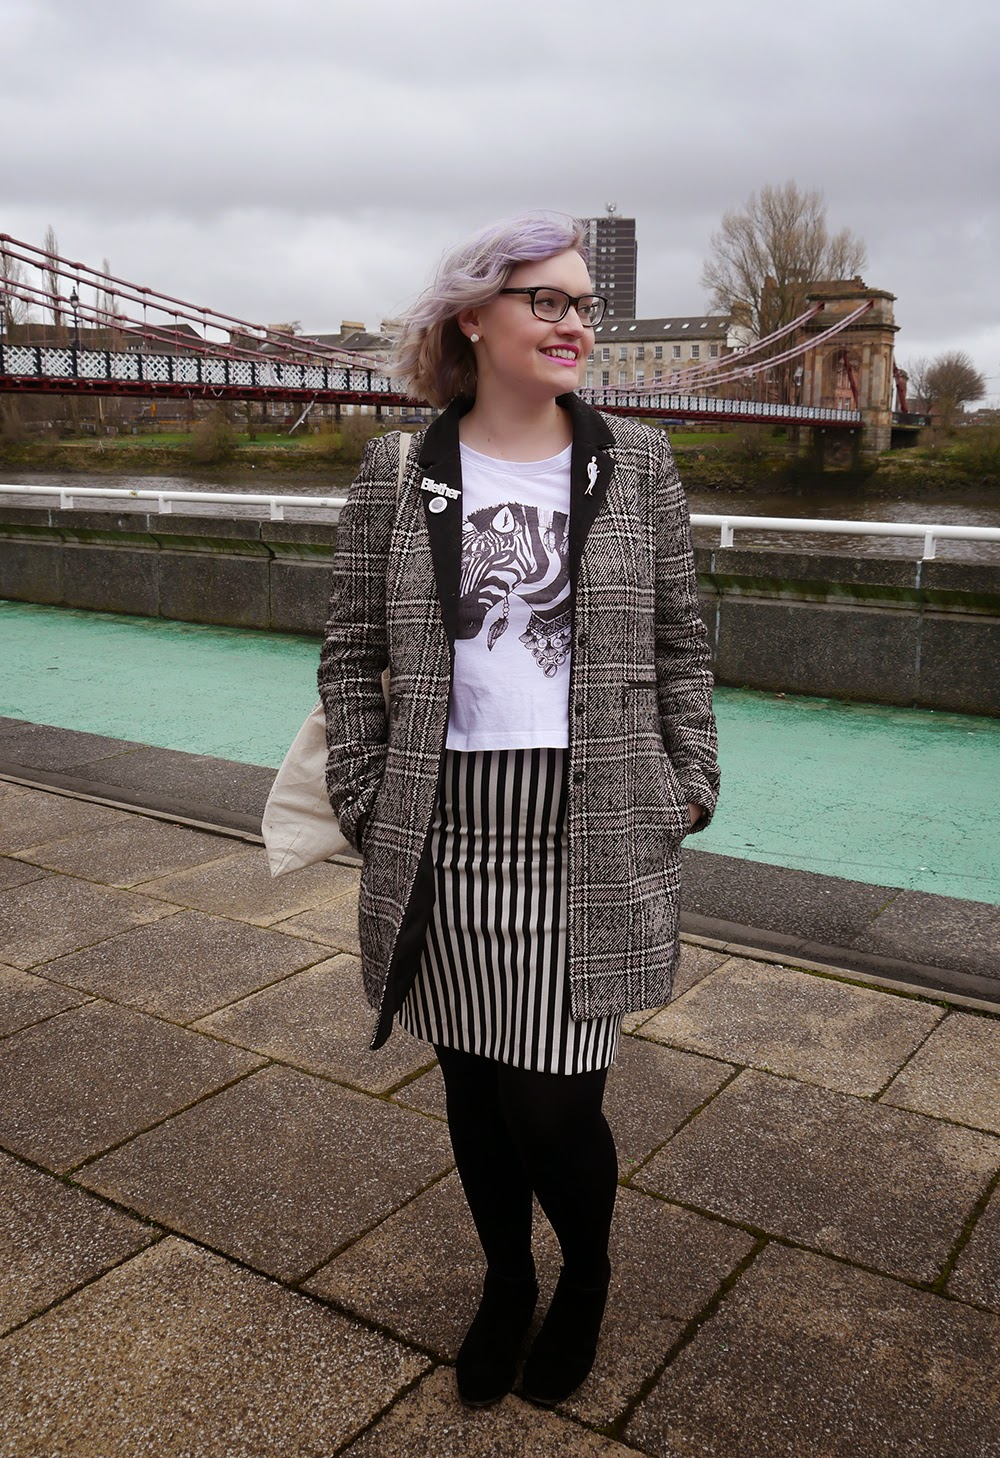 Glasgow, merchant city, the Clyde, plaid, Scottish blogger, style blog, blether, violet hair, purple hair, how to, stripes, monochrome, GirlGang